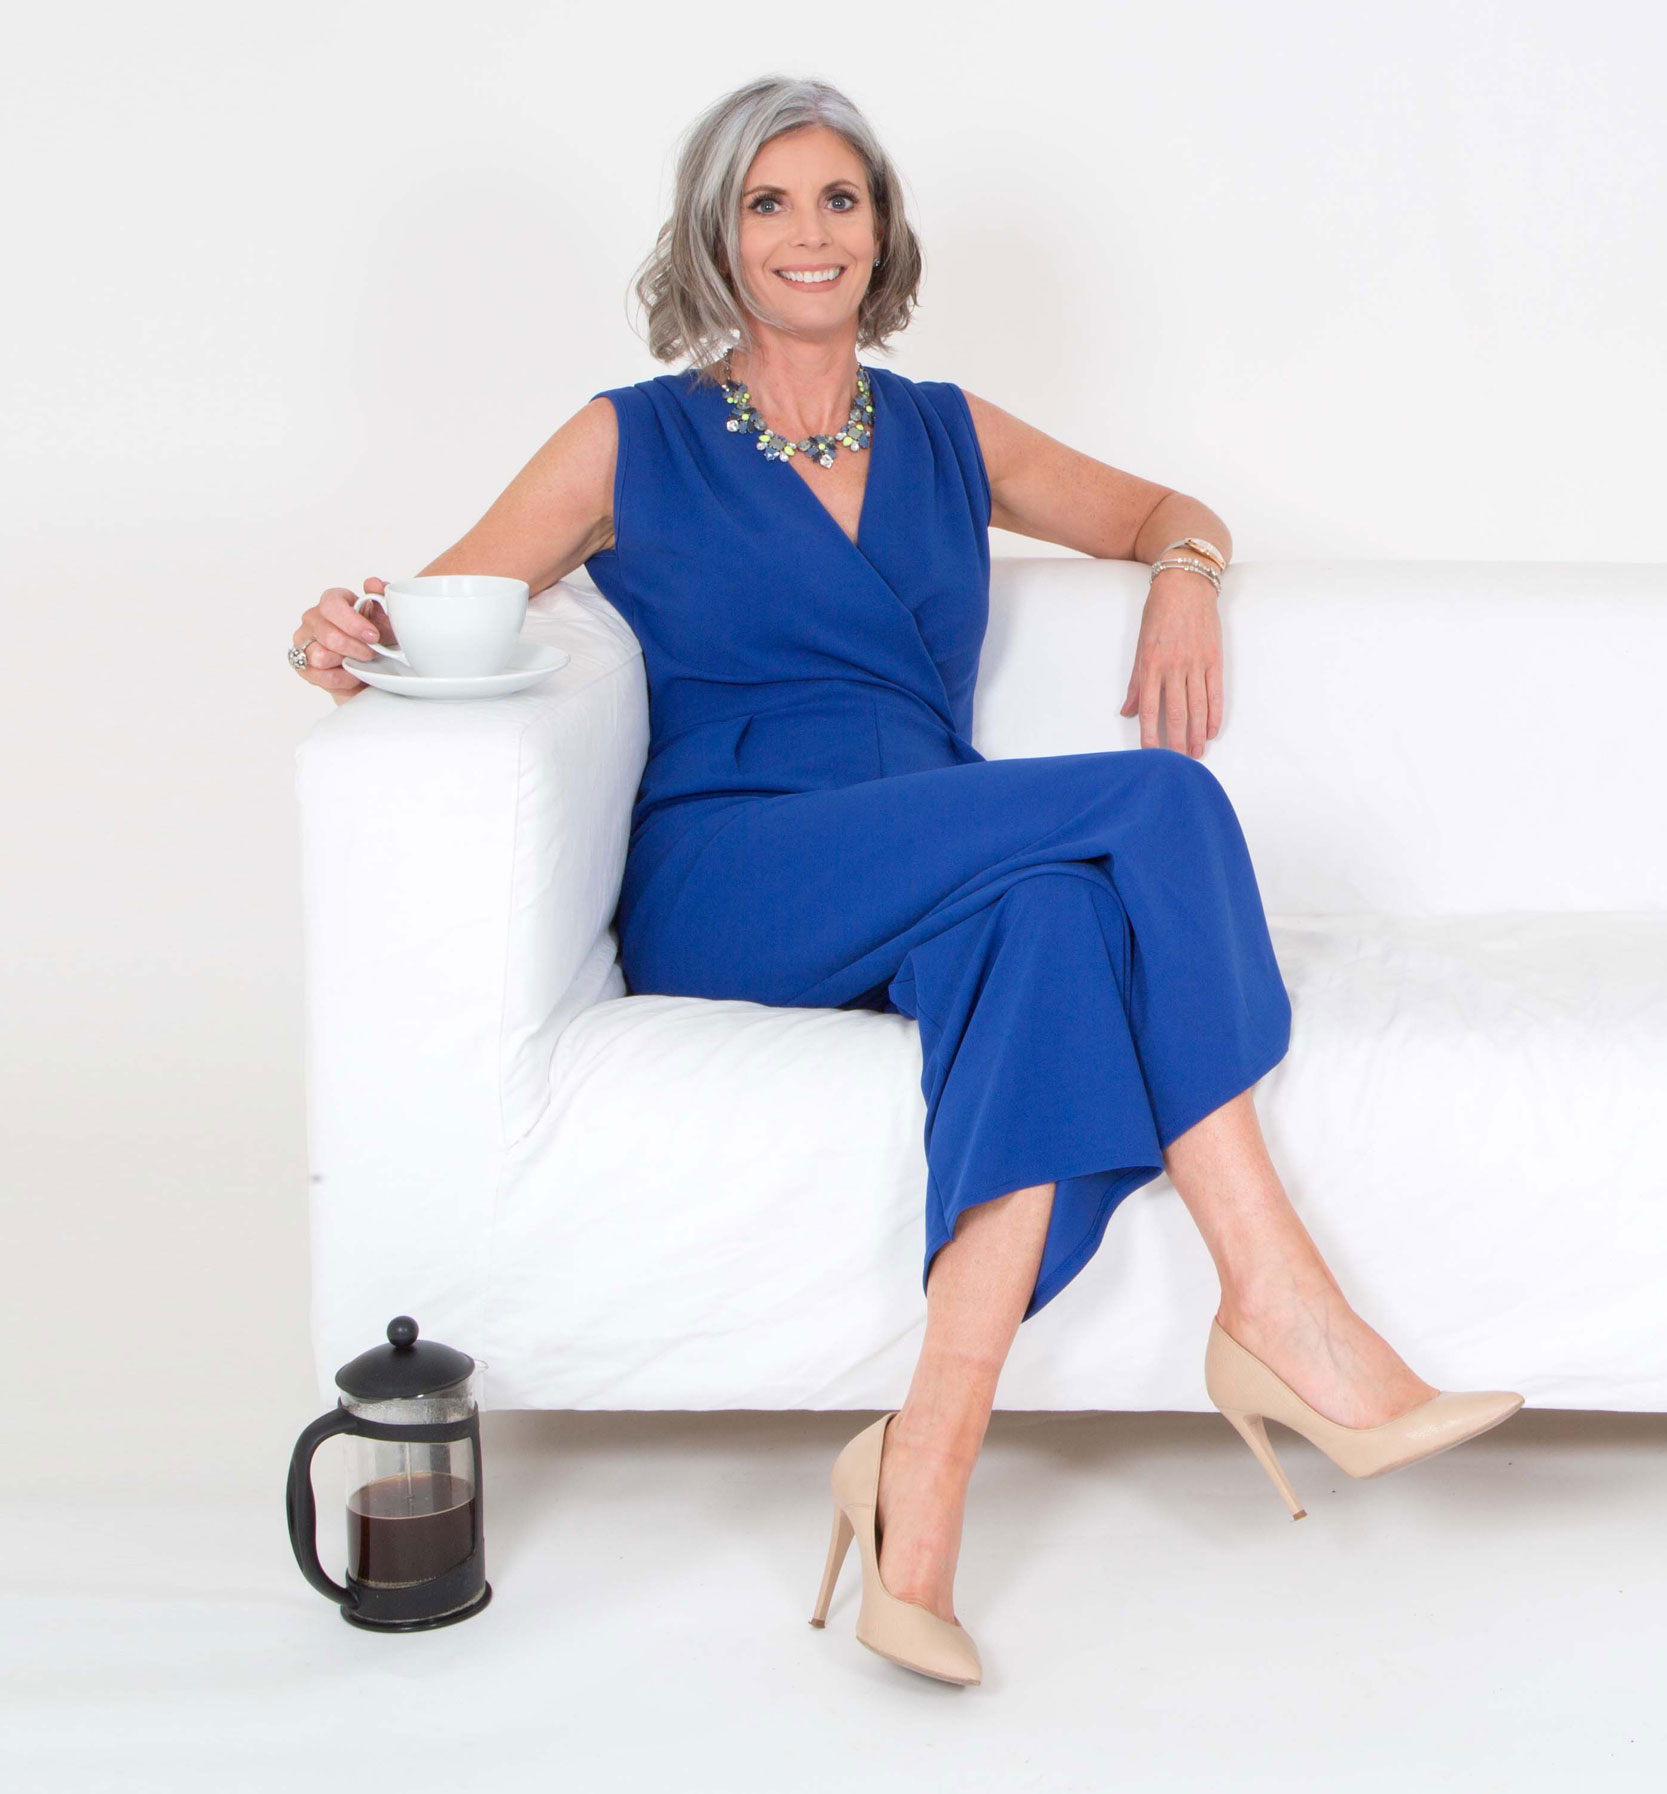 Bernie Delaney - sitting on a couch wearing a blight blue dress